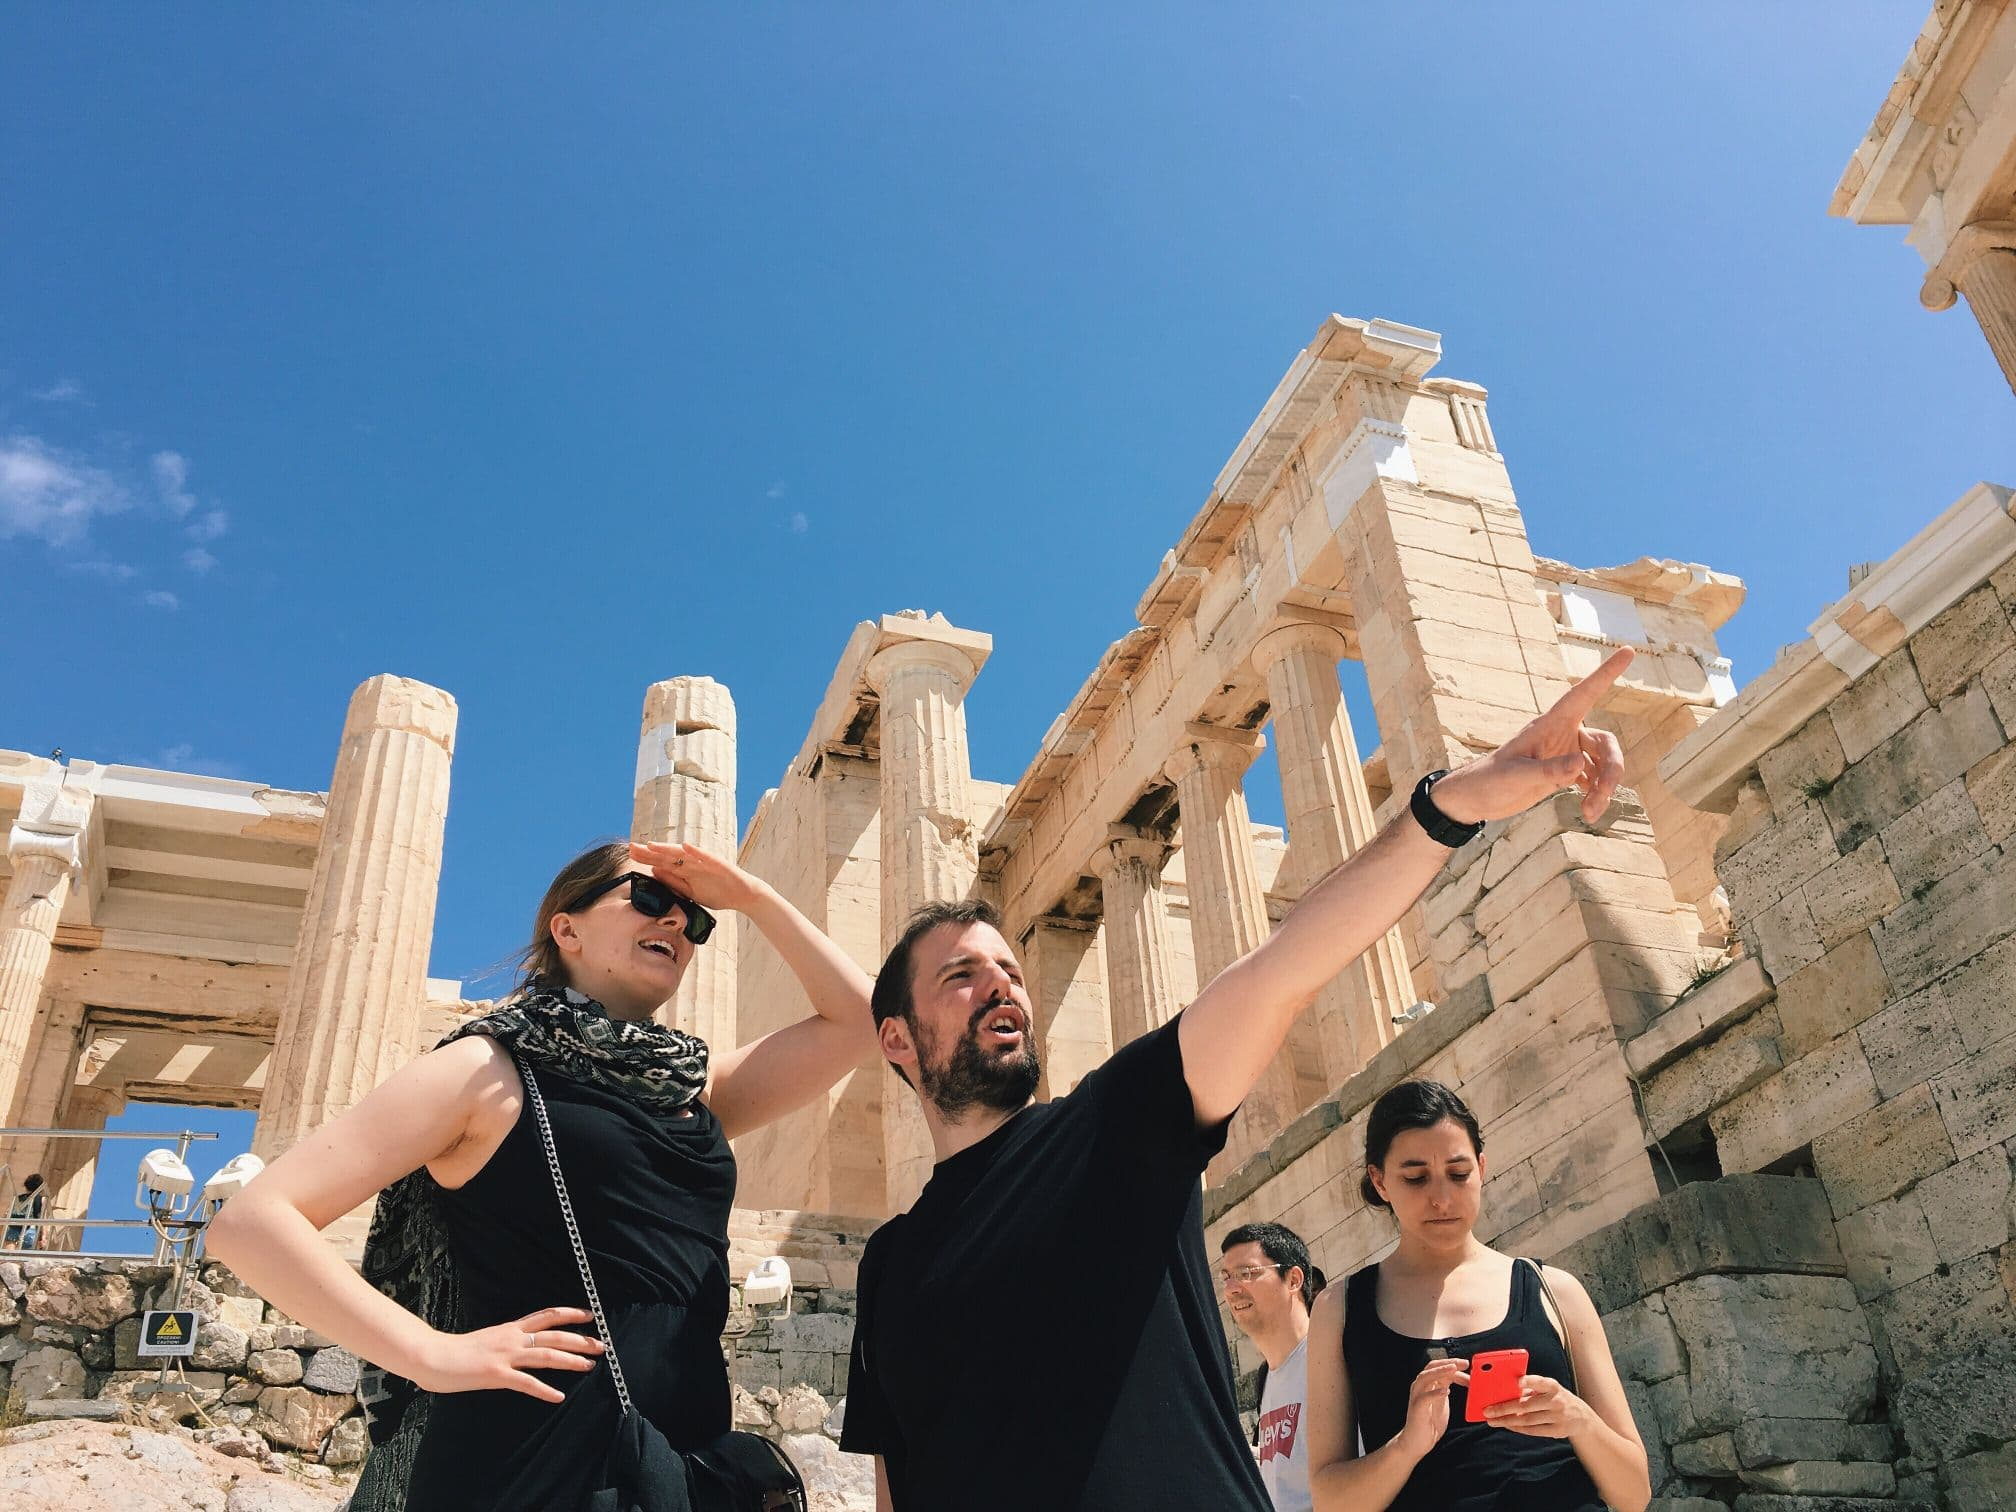 tourists-at-the-acropolis-in-athens-greece_t20_EO1xd8